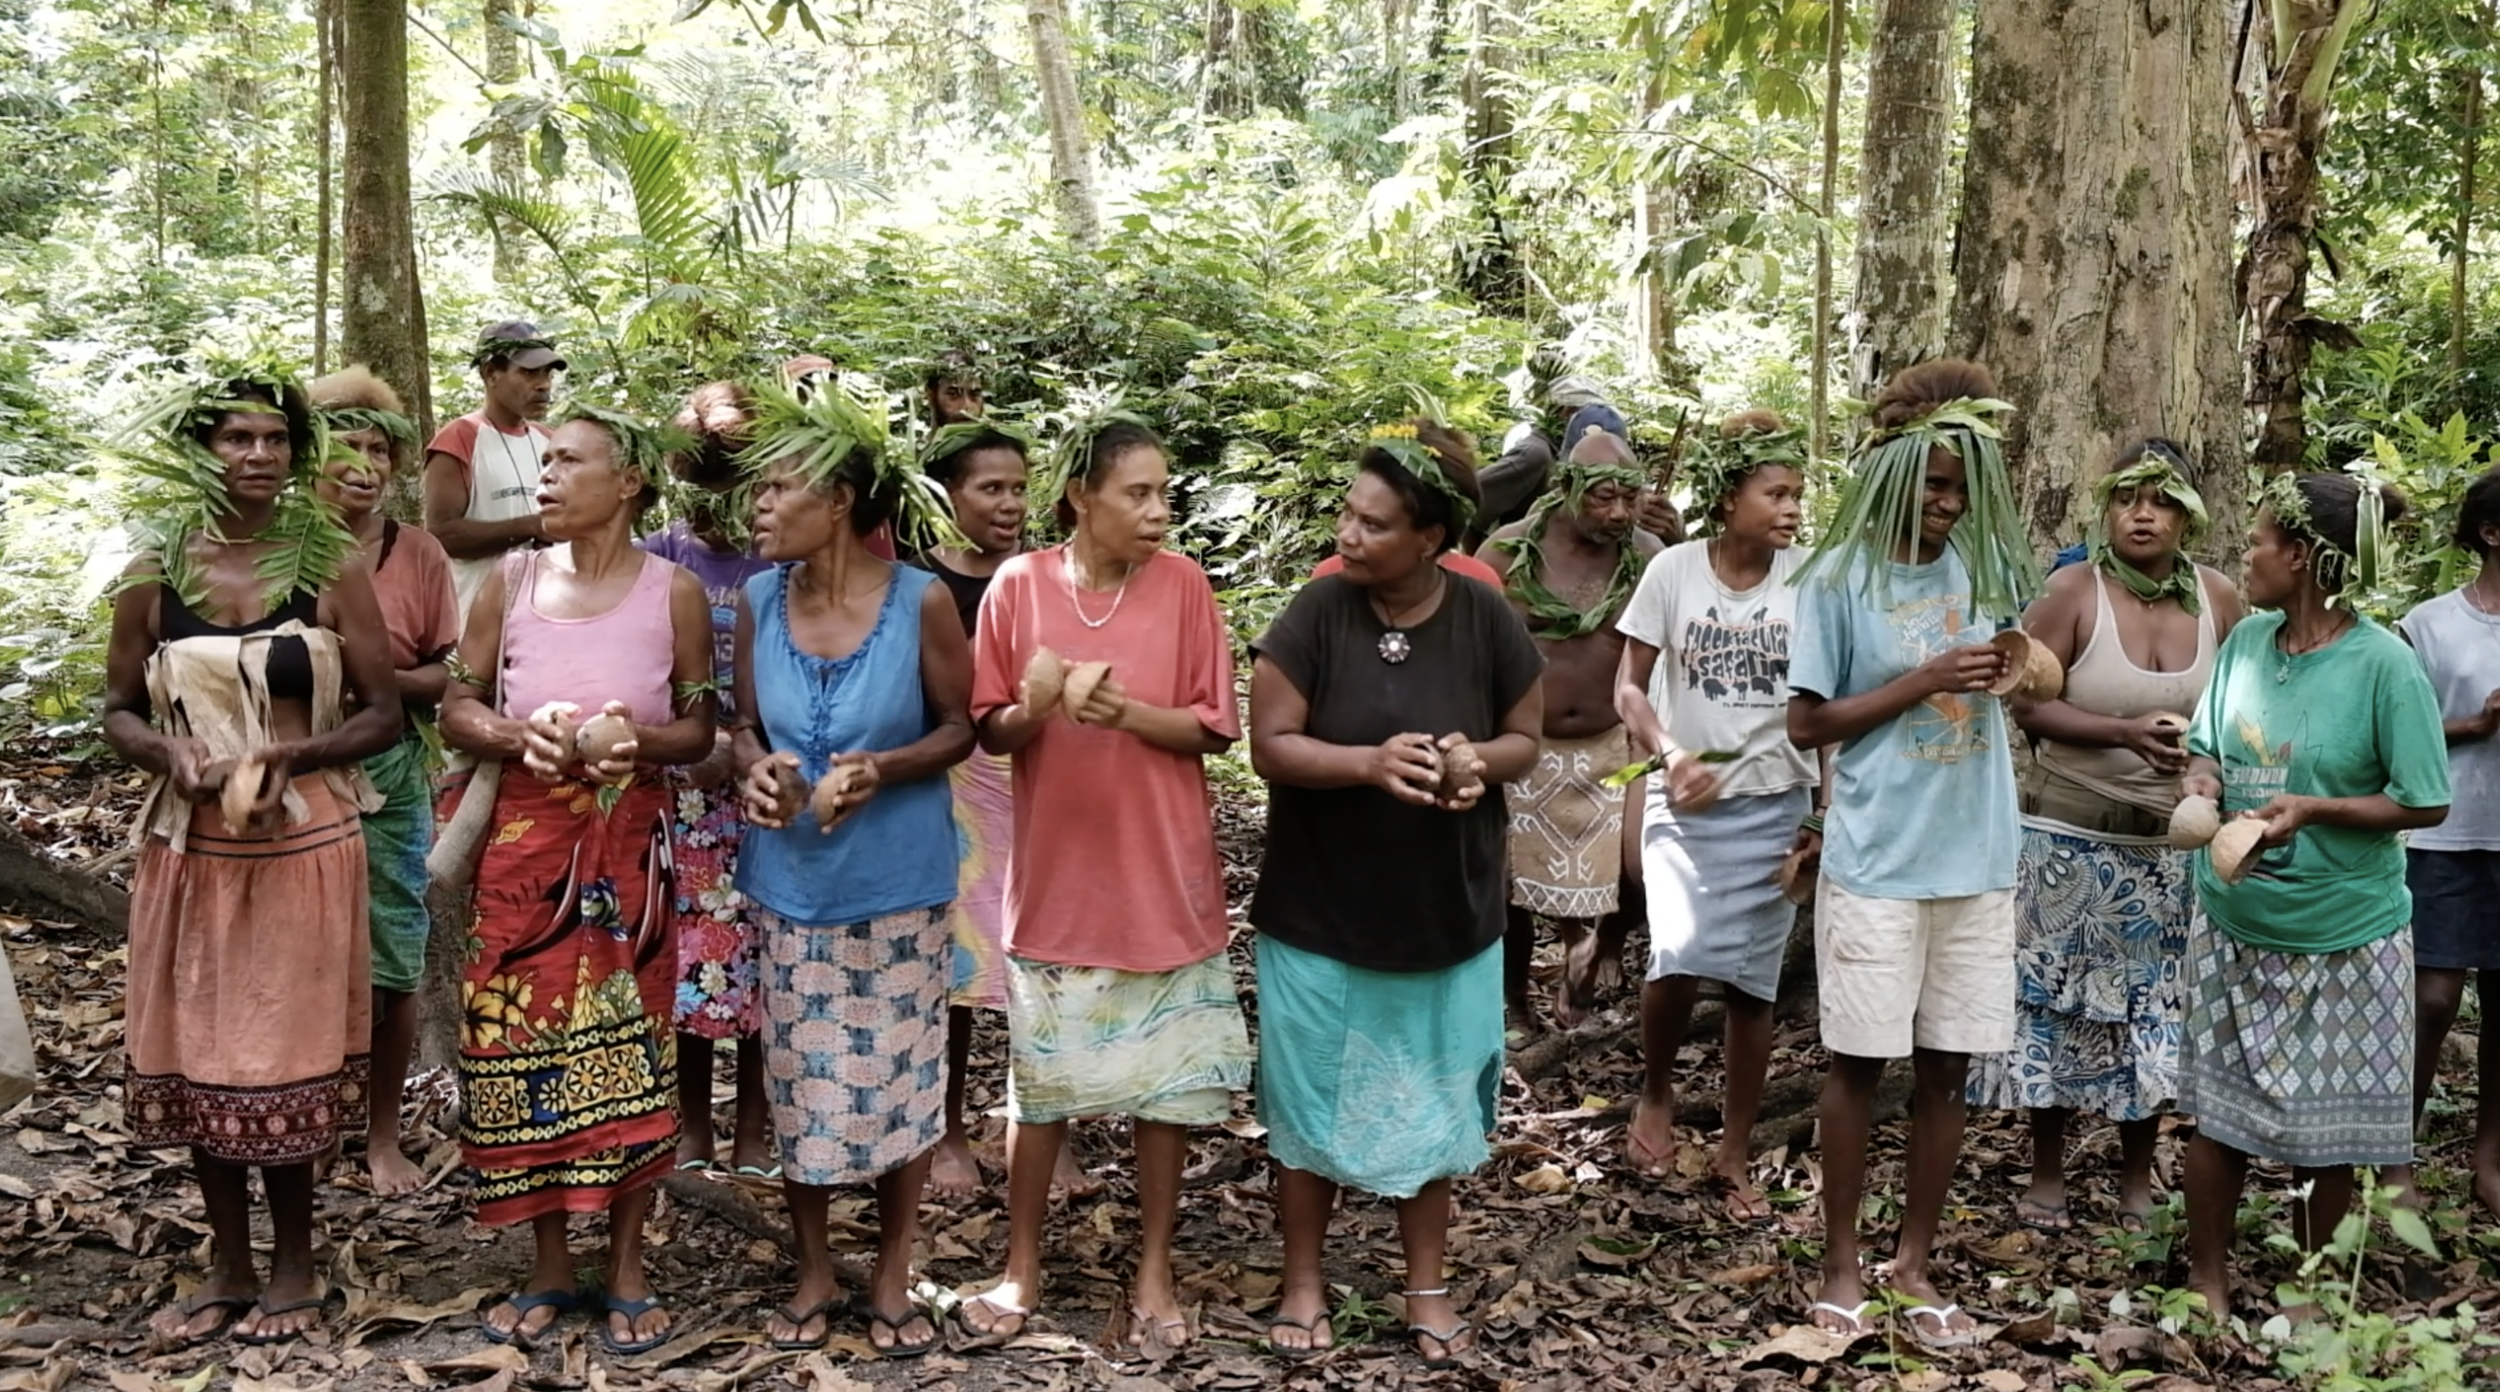 Women of Tuwo gather in the forest to perform a traditional  kastom  song about the changing climate. Knowledge about crops, weather and seasons has been passed down through stories and songs generations, but changes in the climate make this guidance less reliable.